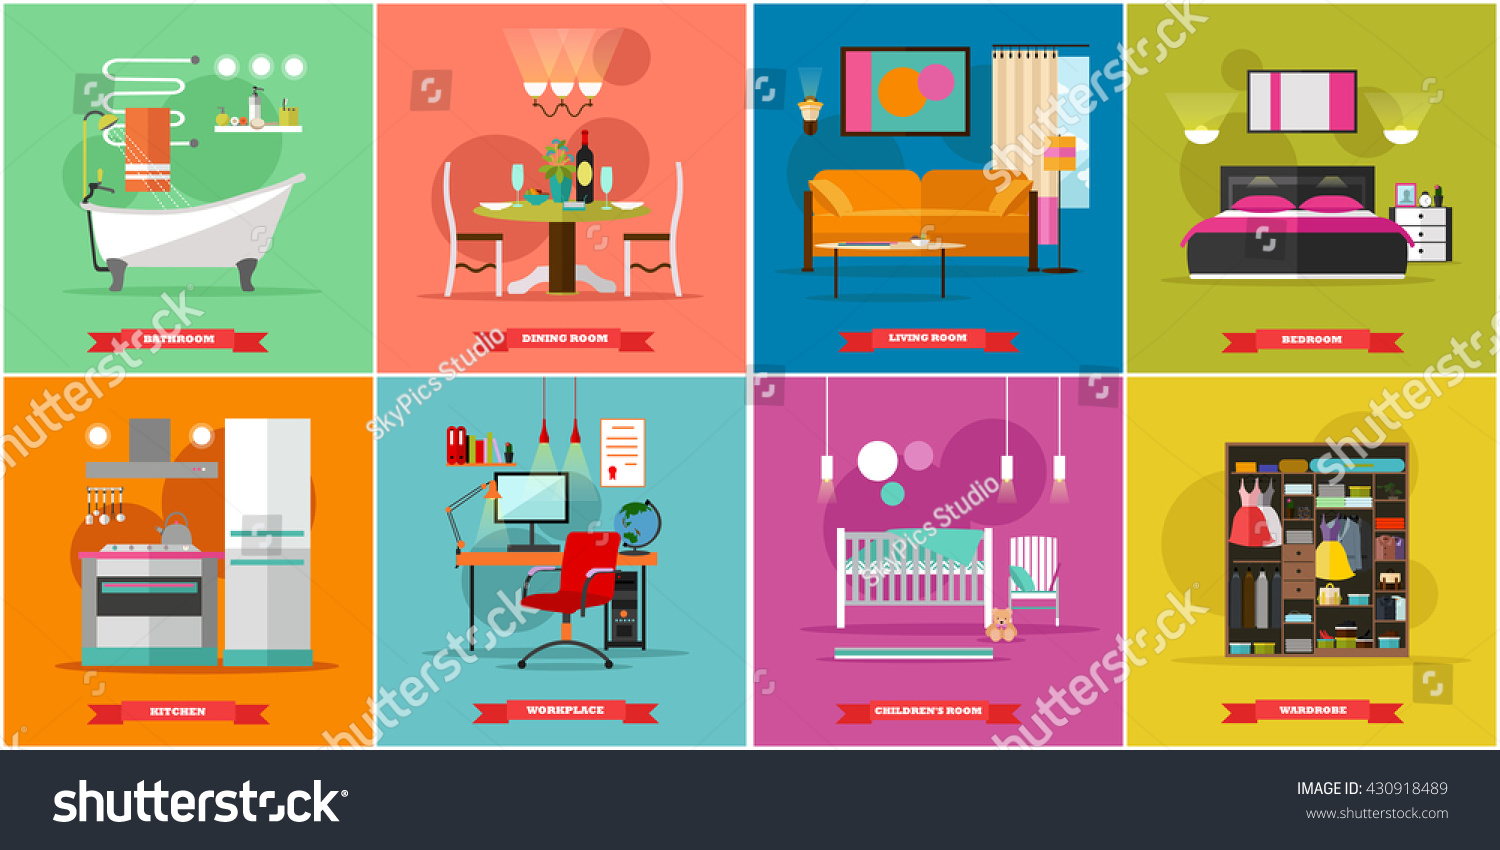 Superior Home Interior Vector Illustration In Flat Style. House Design With Furniture,  Kitchen, Bathroom